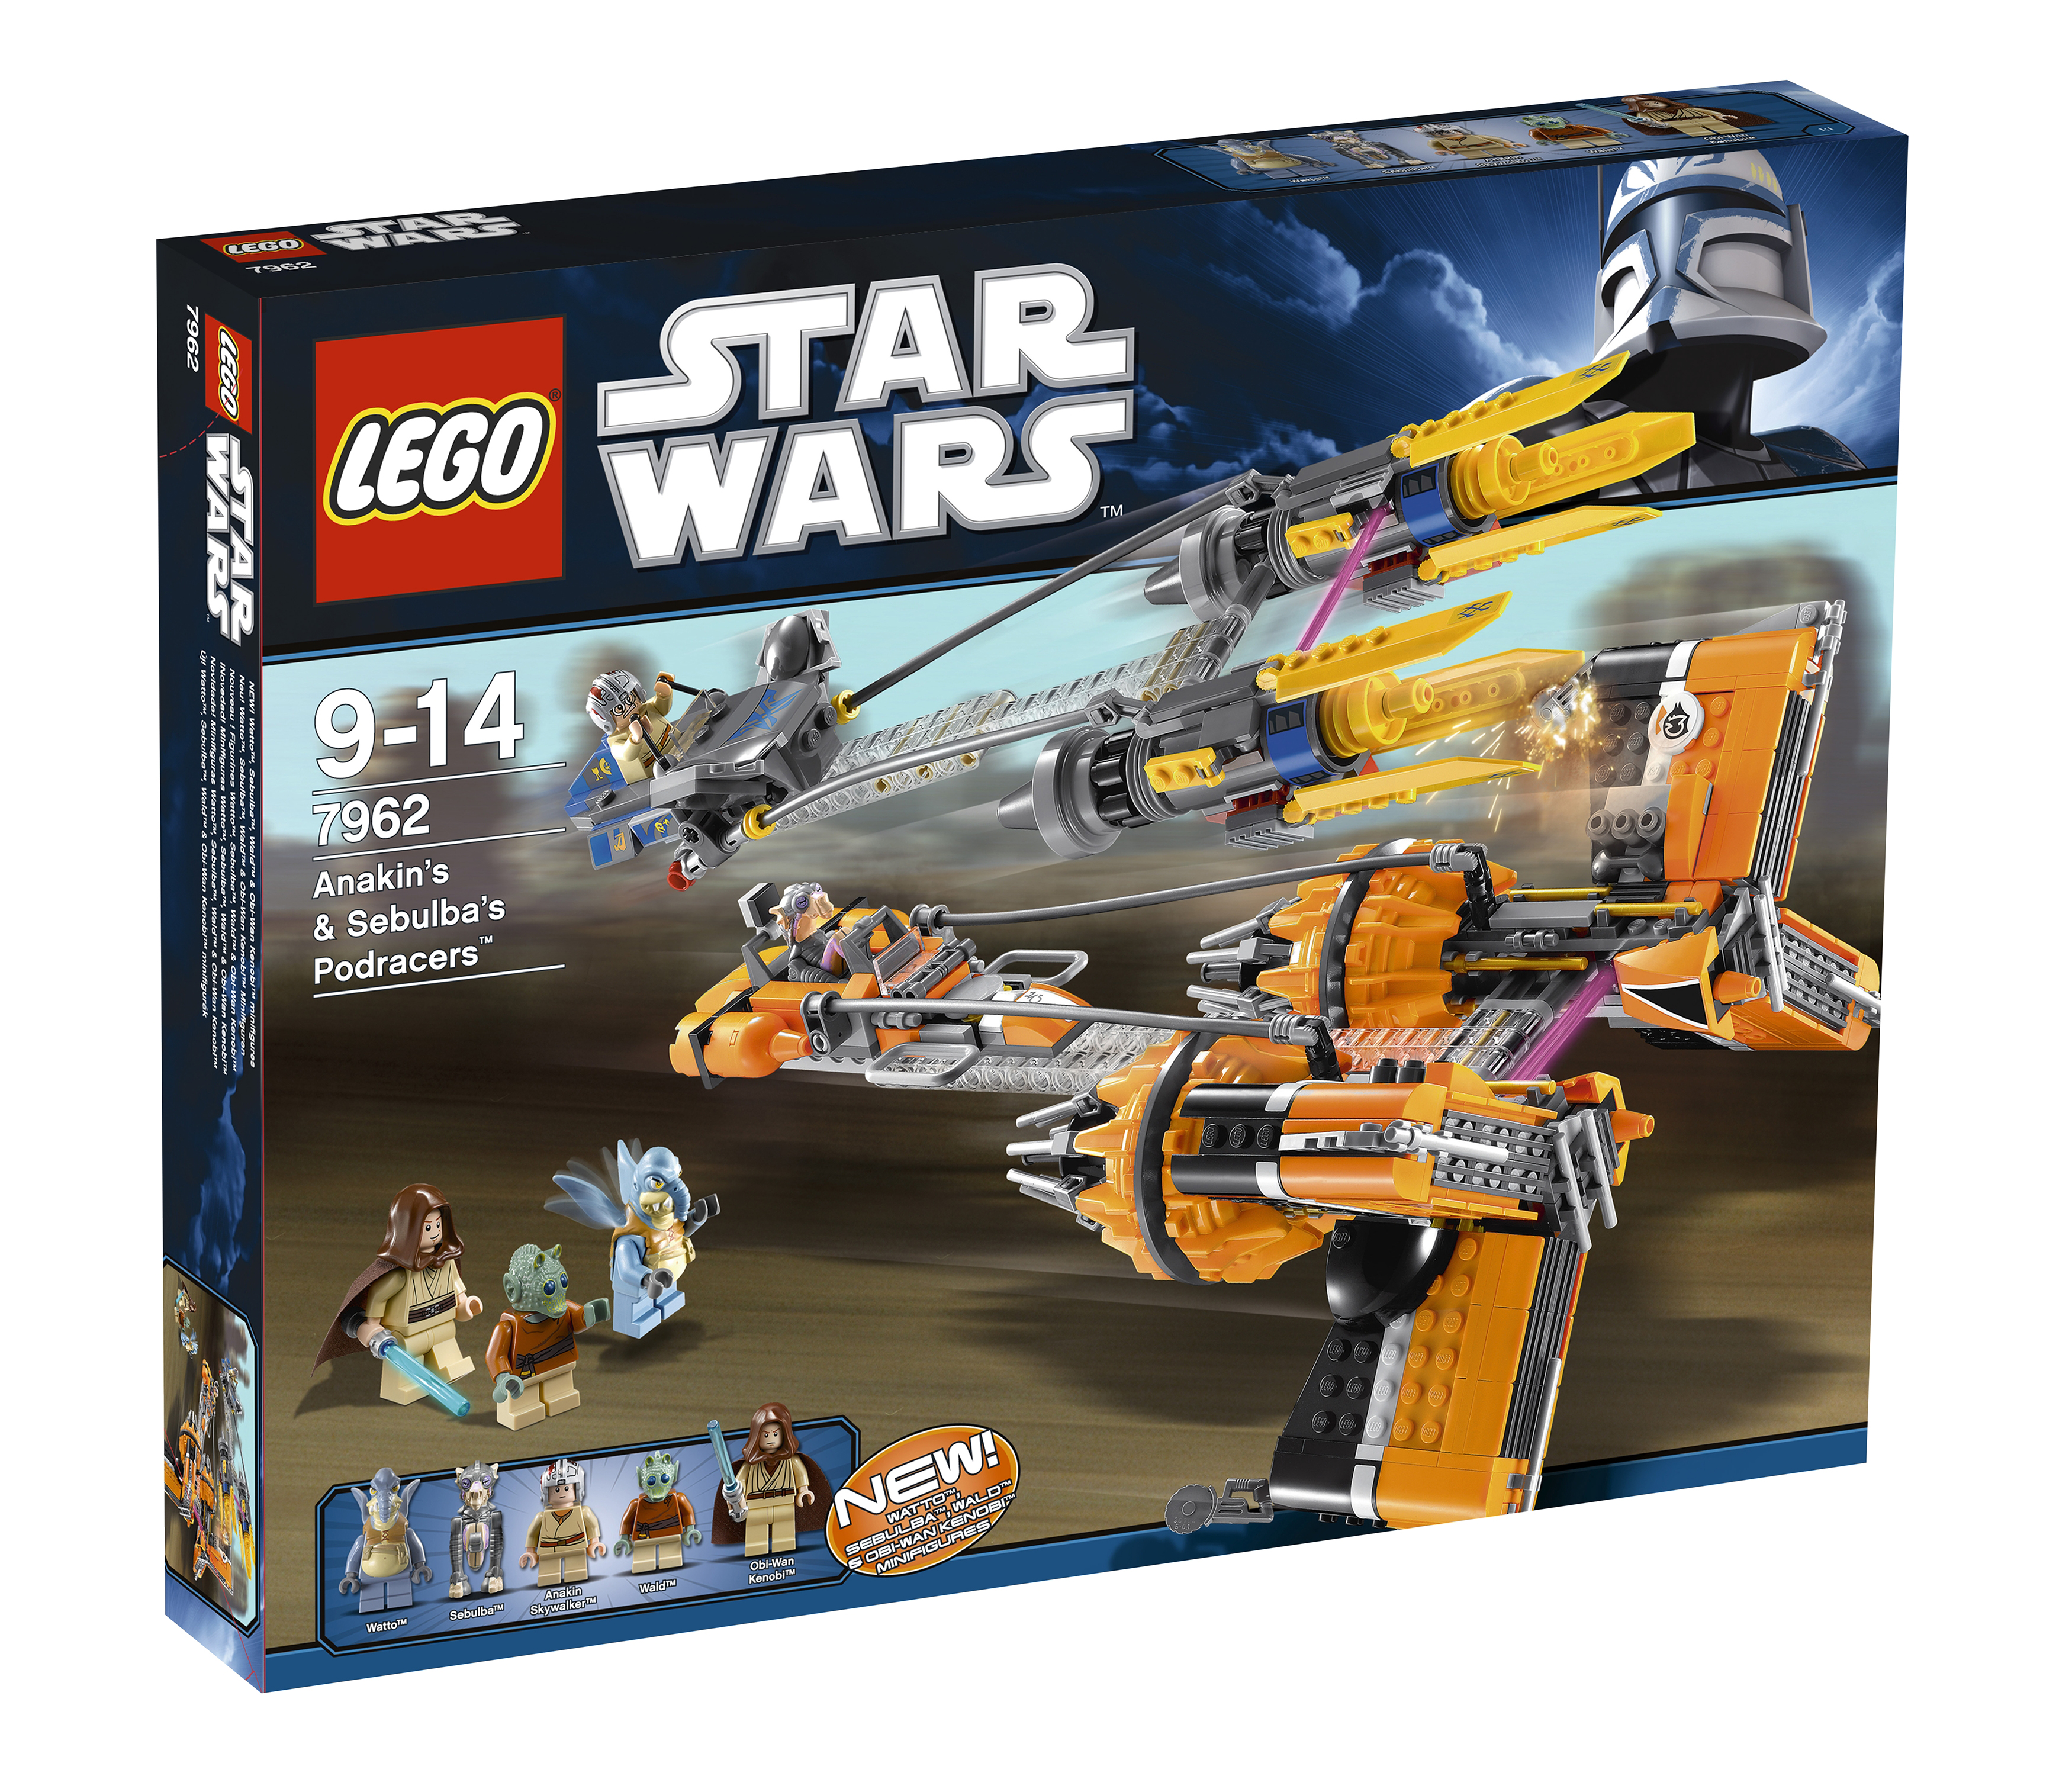 REVIEW: 7962 Anakin's & Sebulba's Podracers - LEGO Star Wars ...